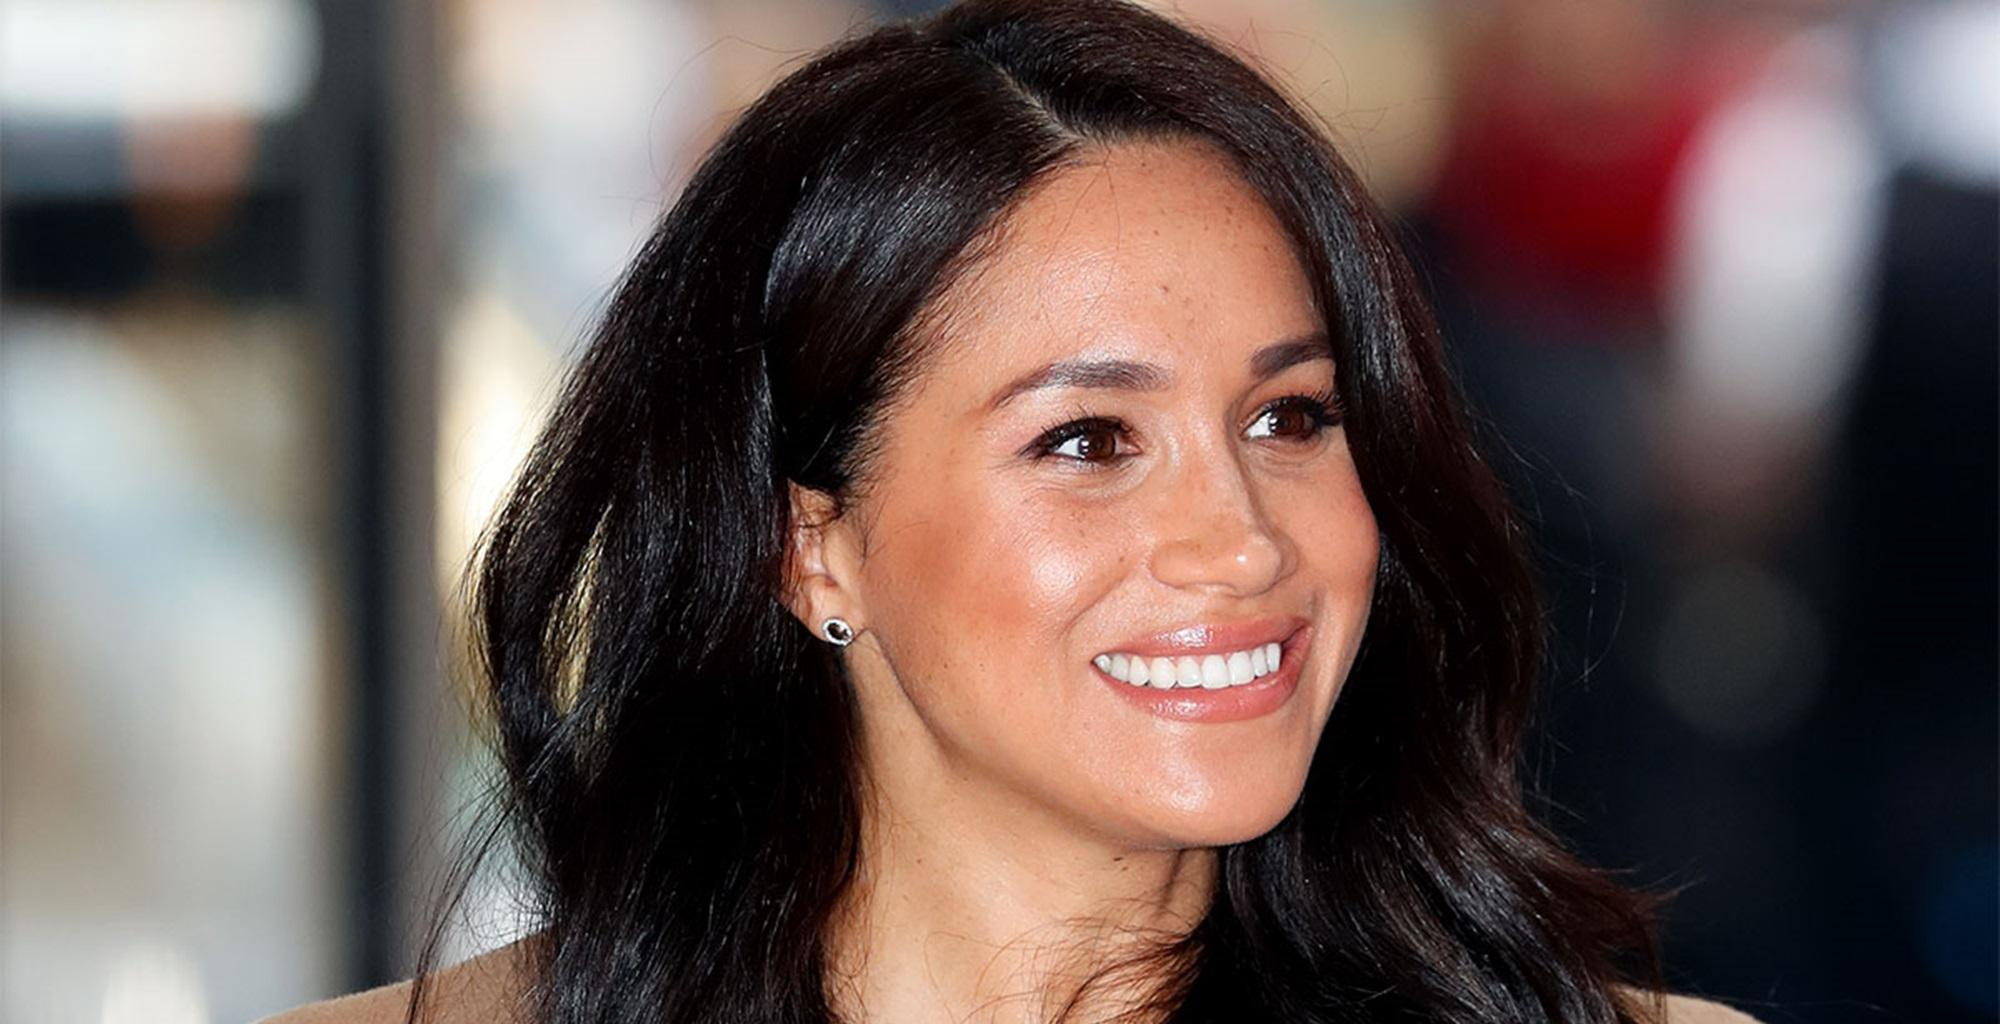 Meghan Markle's Half-Brother Apologizes For Publicly Humiliating Her, But There Is A Nasty Twist To The Story